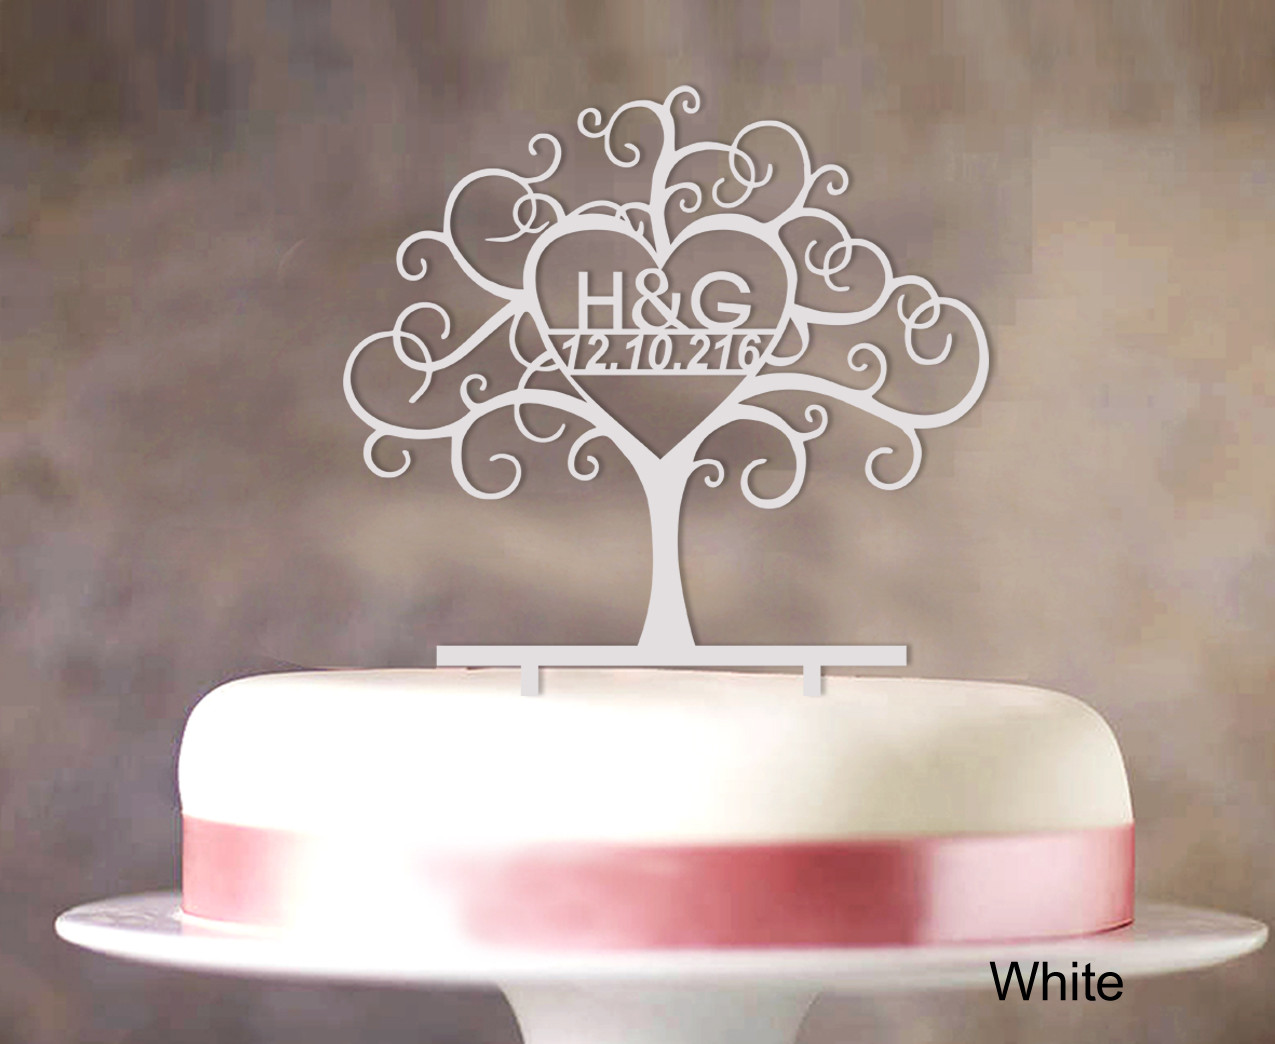 Personalized Cake Toppers For Wedding Cakes  Custom Wedding Cake Toppers Personalized First And Last